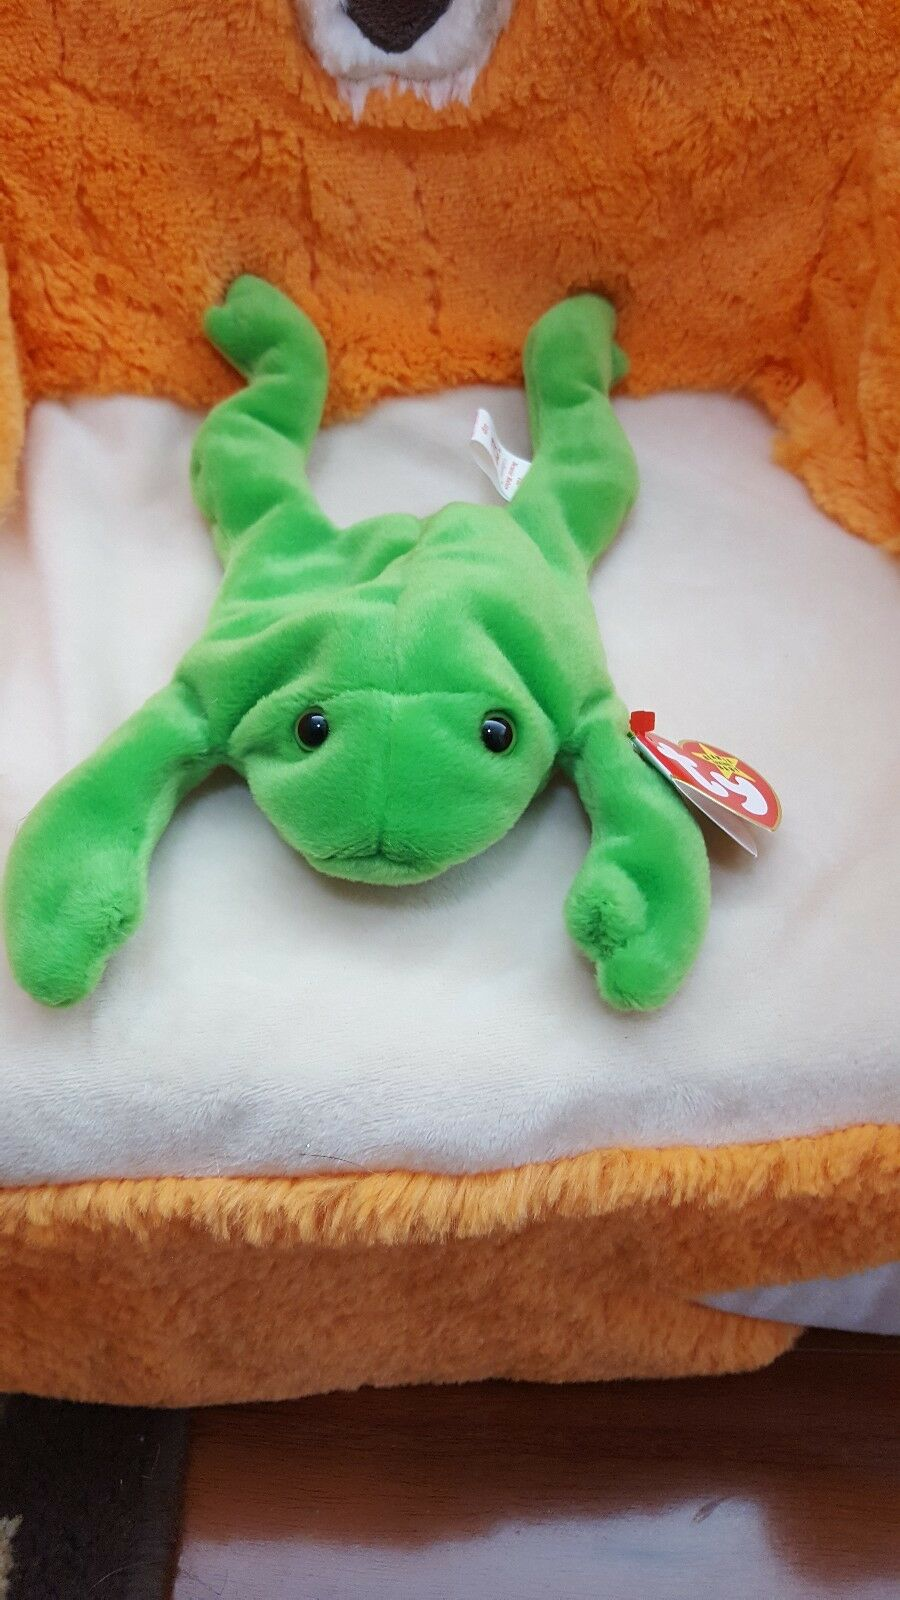 TY Beanie Baby Legs the Frog style 4020 with ERRORS VERY RARE style 4020 4-23-93